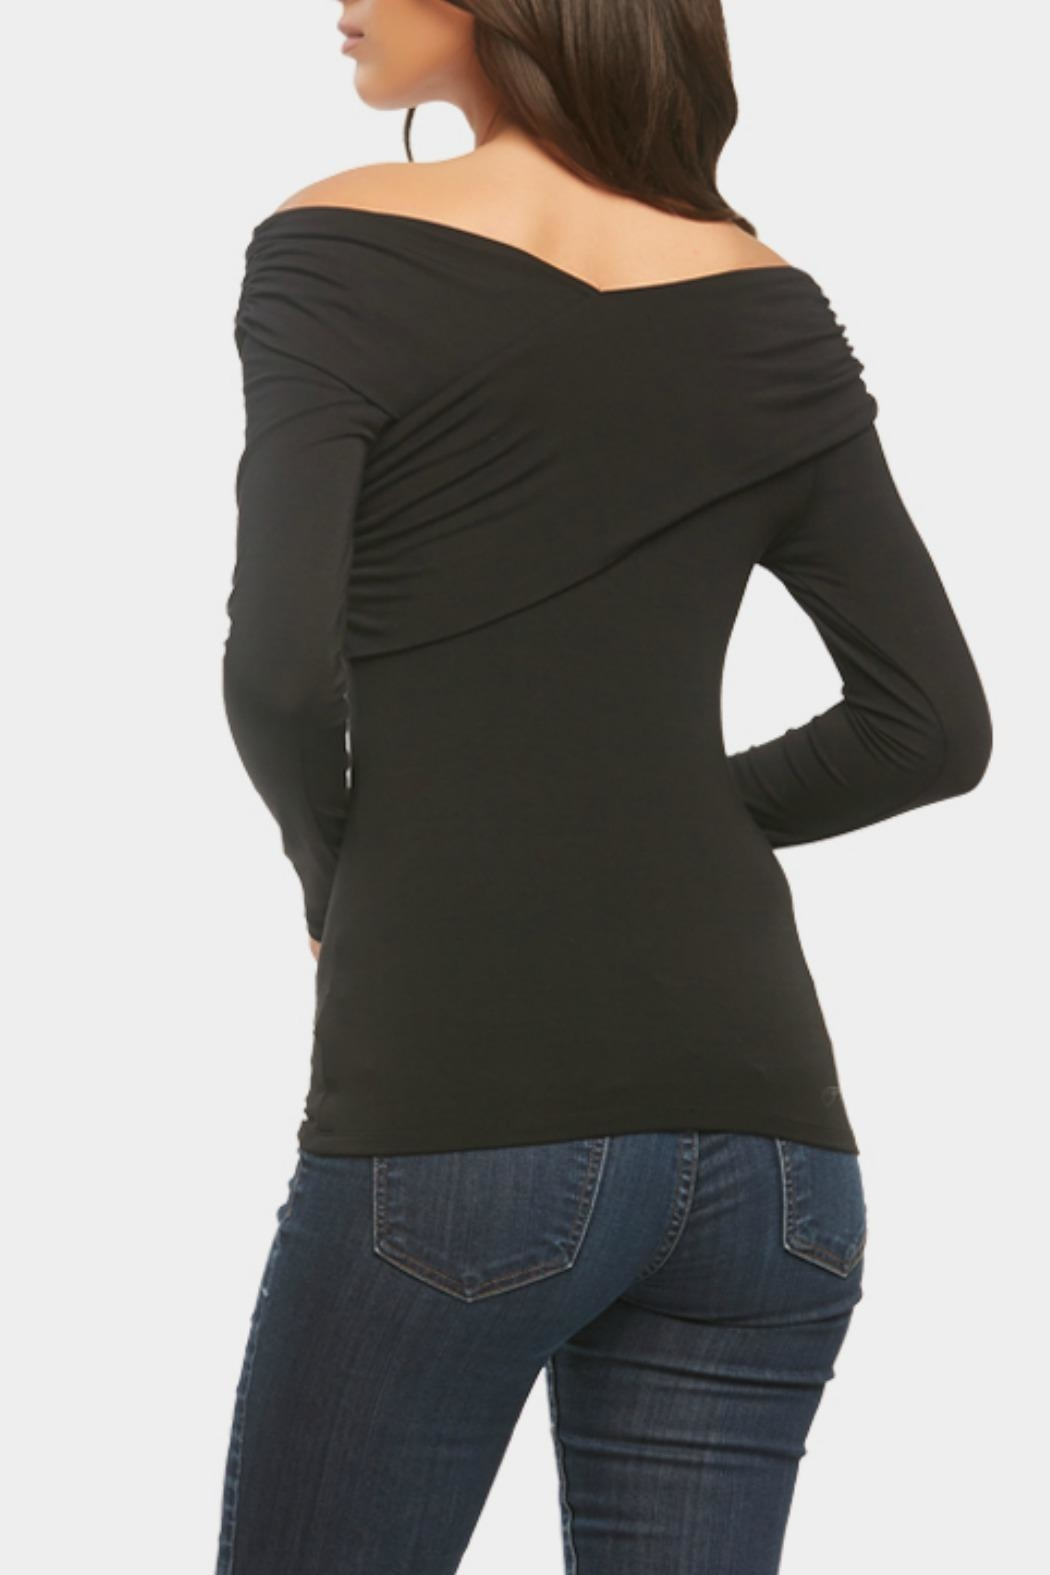 Tart Collections Kennedy Off-Shoulder Top - Side Cropped Image